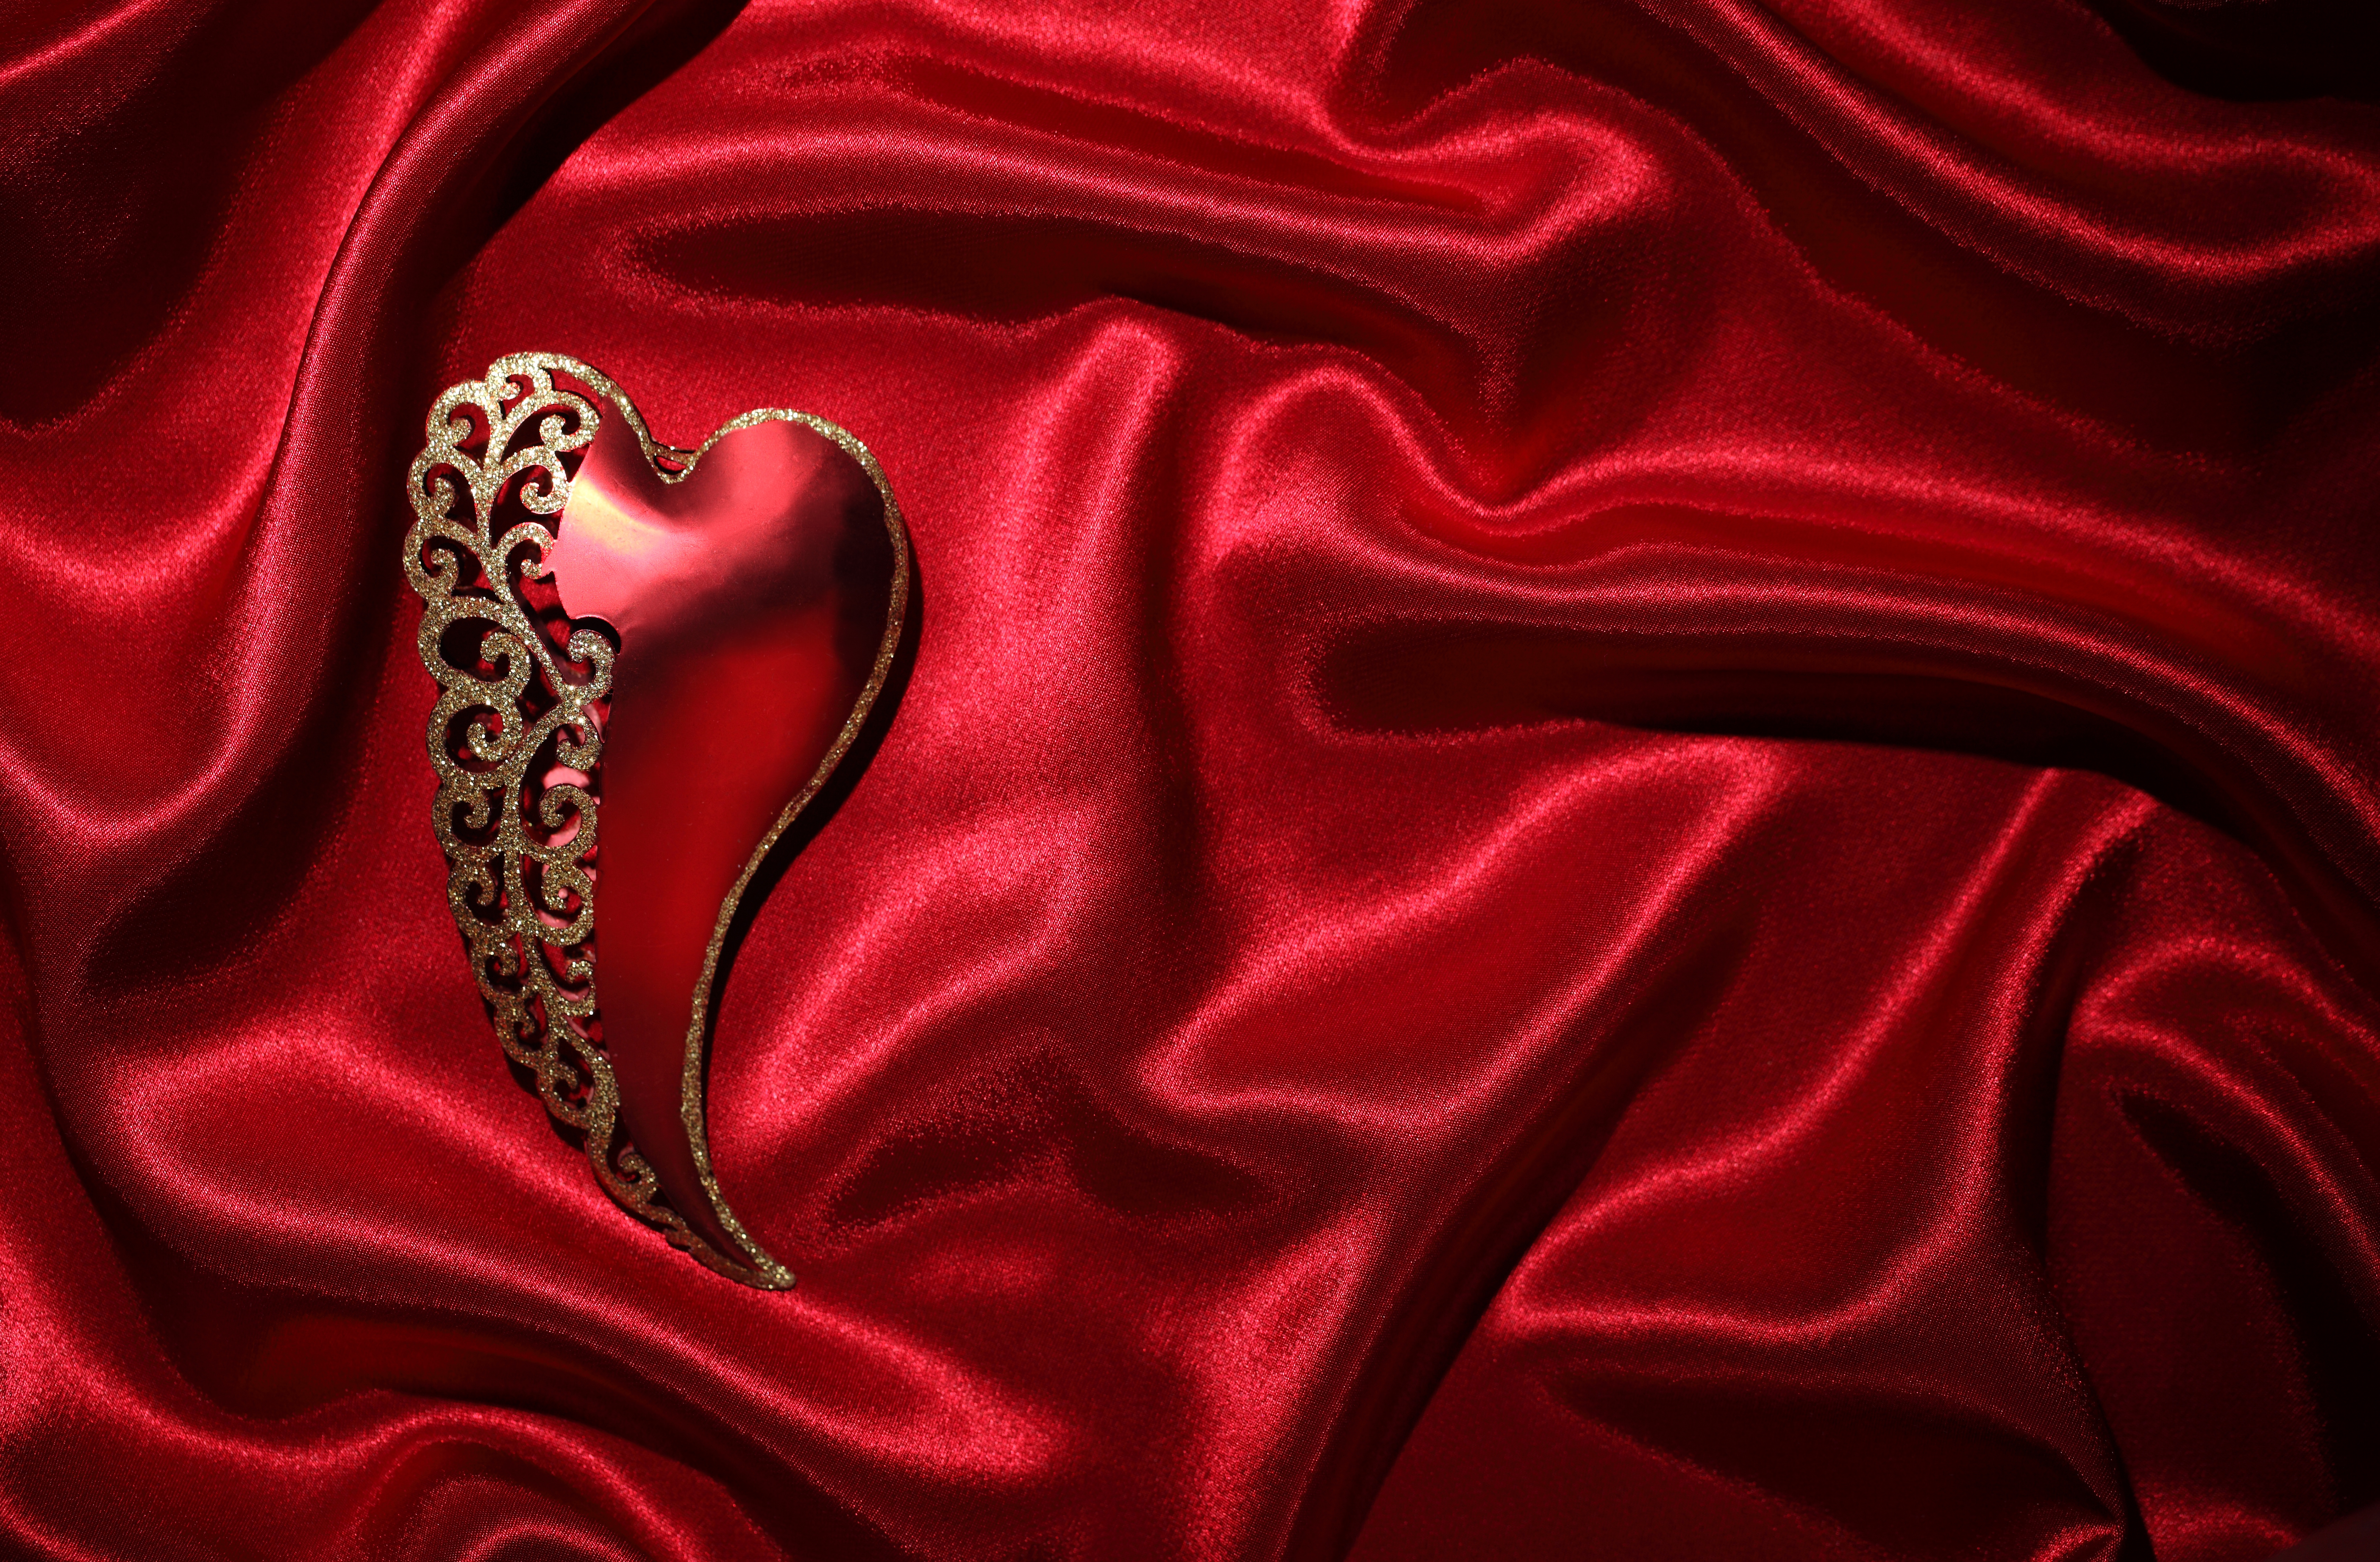 Red and Gold Heart 5k Retina Ultra HD Wallpaper and Background